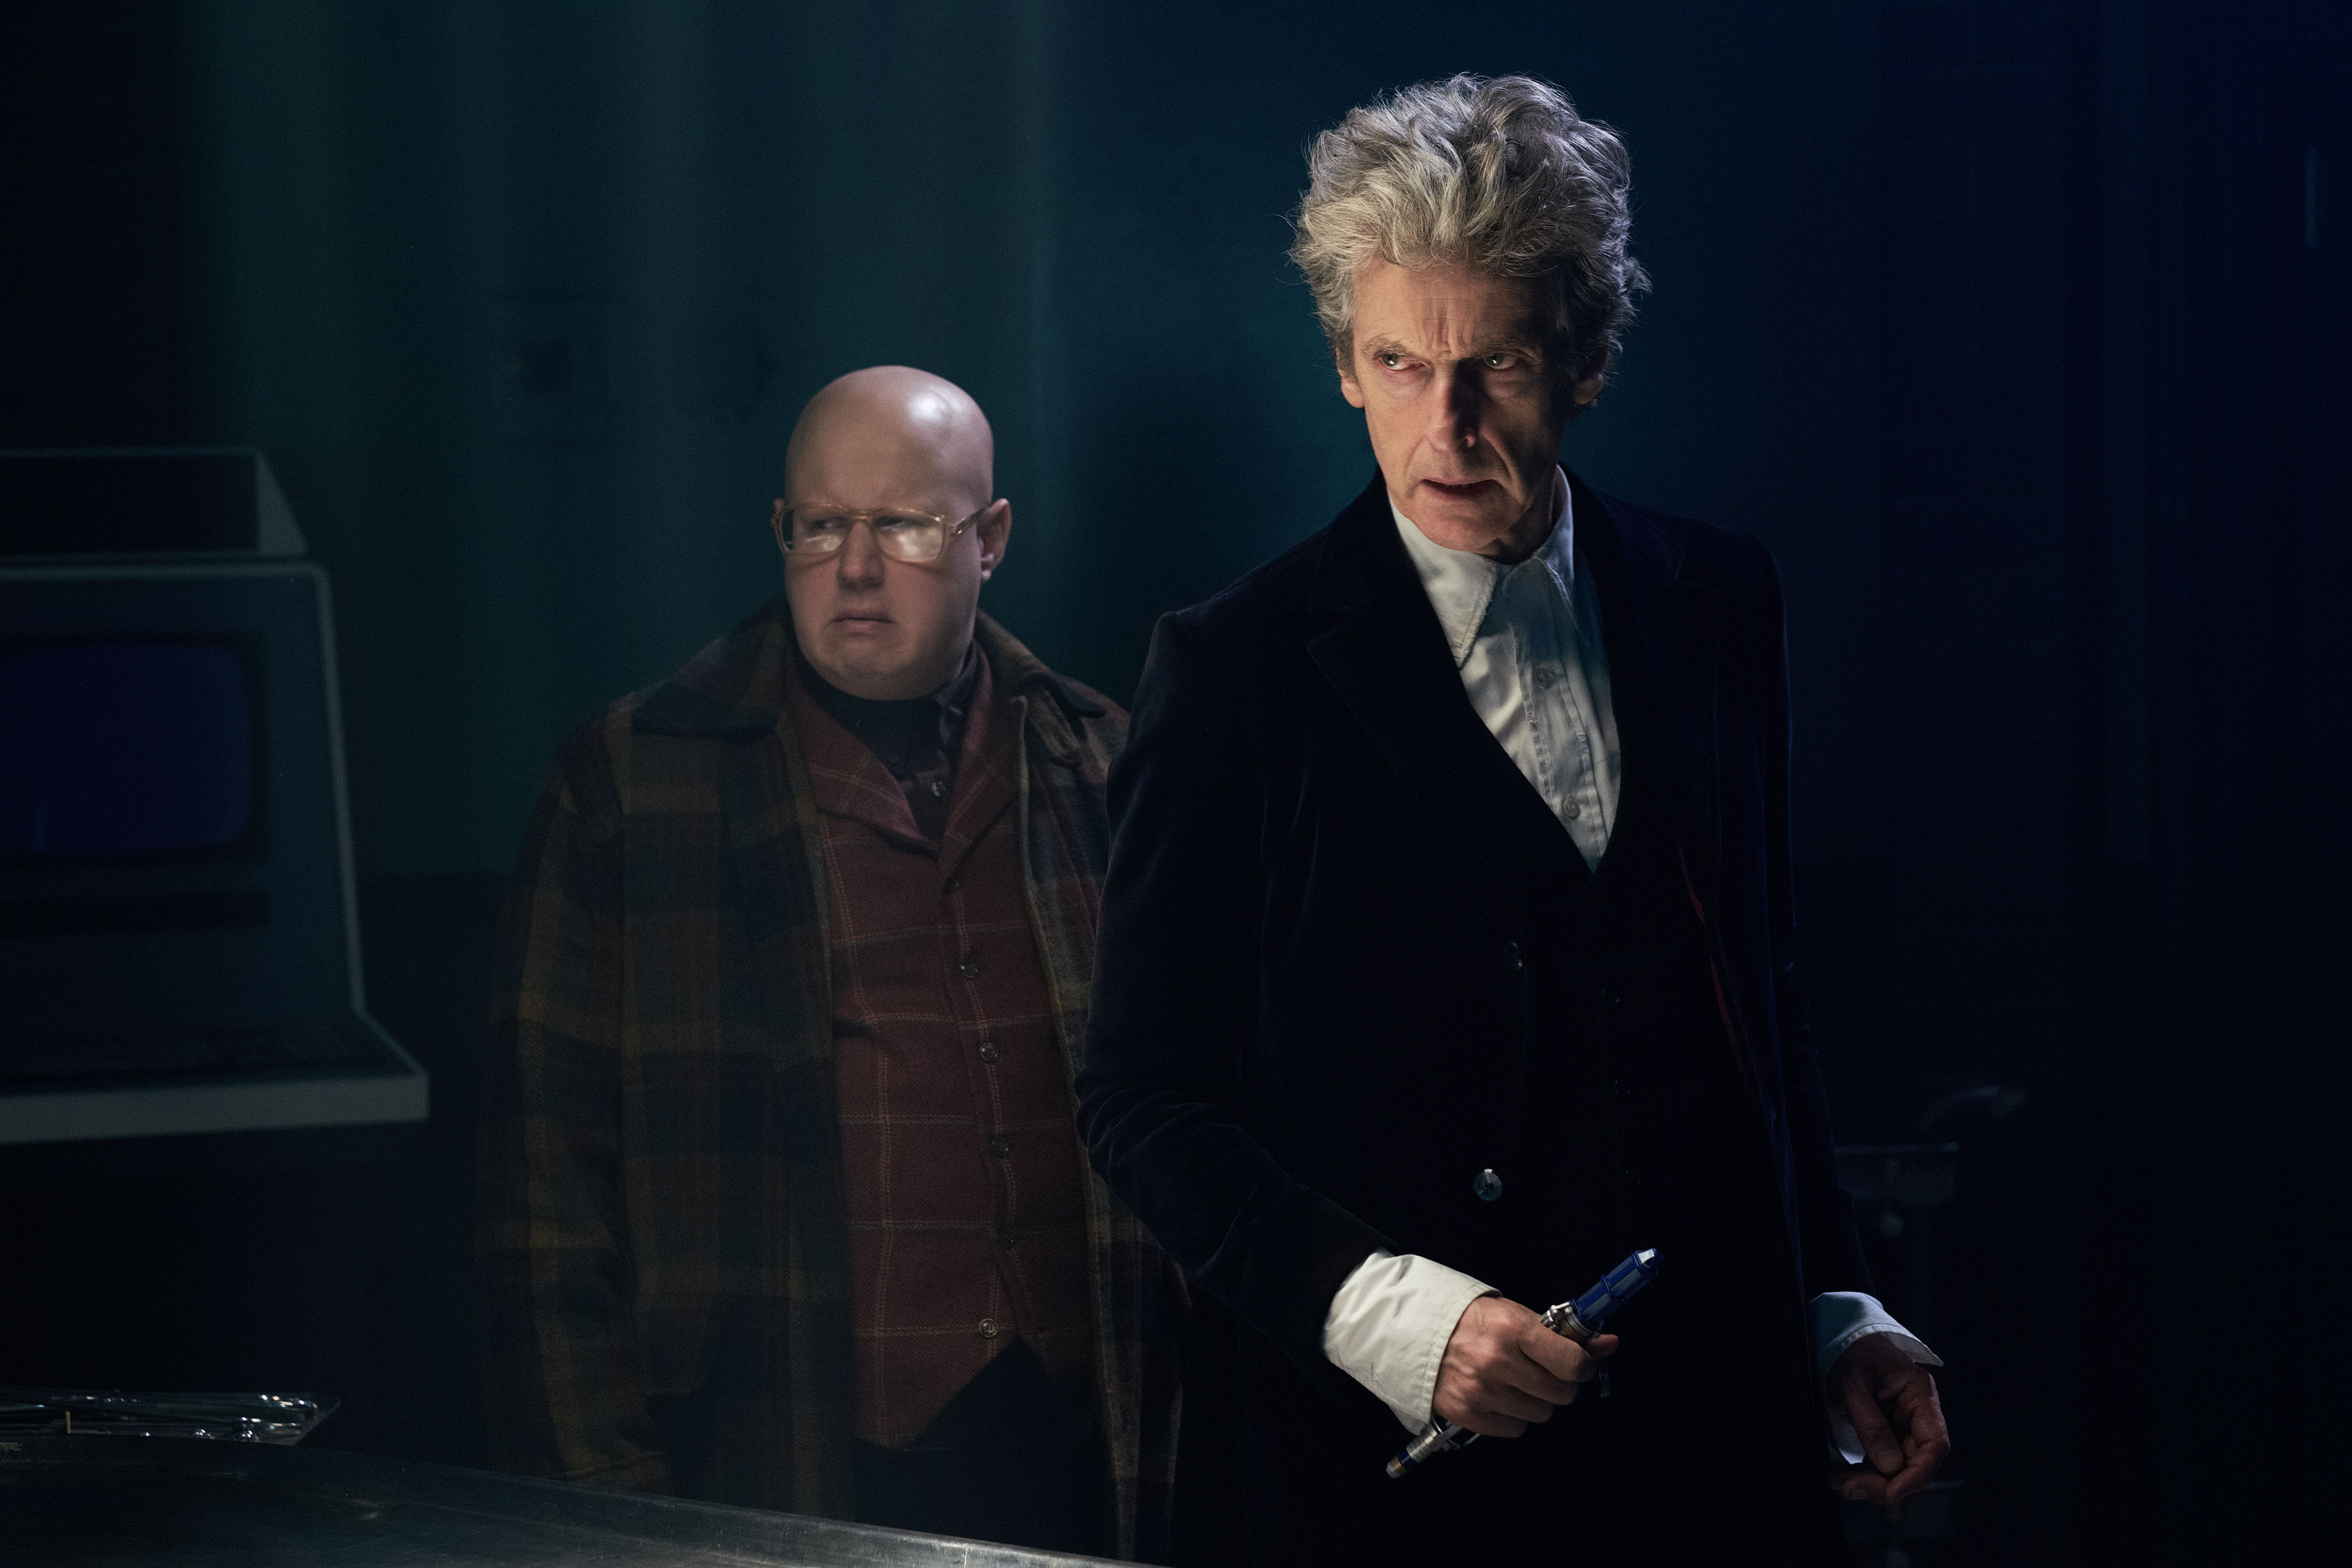 Doctor Who - Episode 10.11 - World Enough and Time - Promo Pics